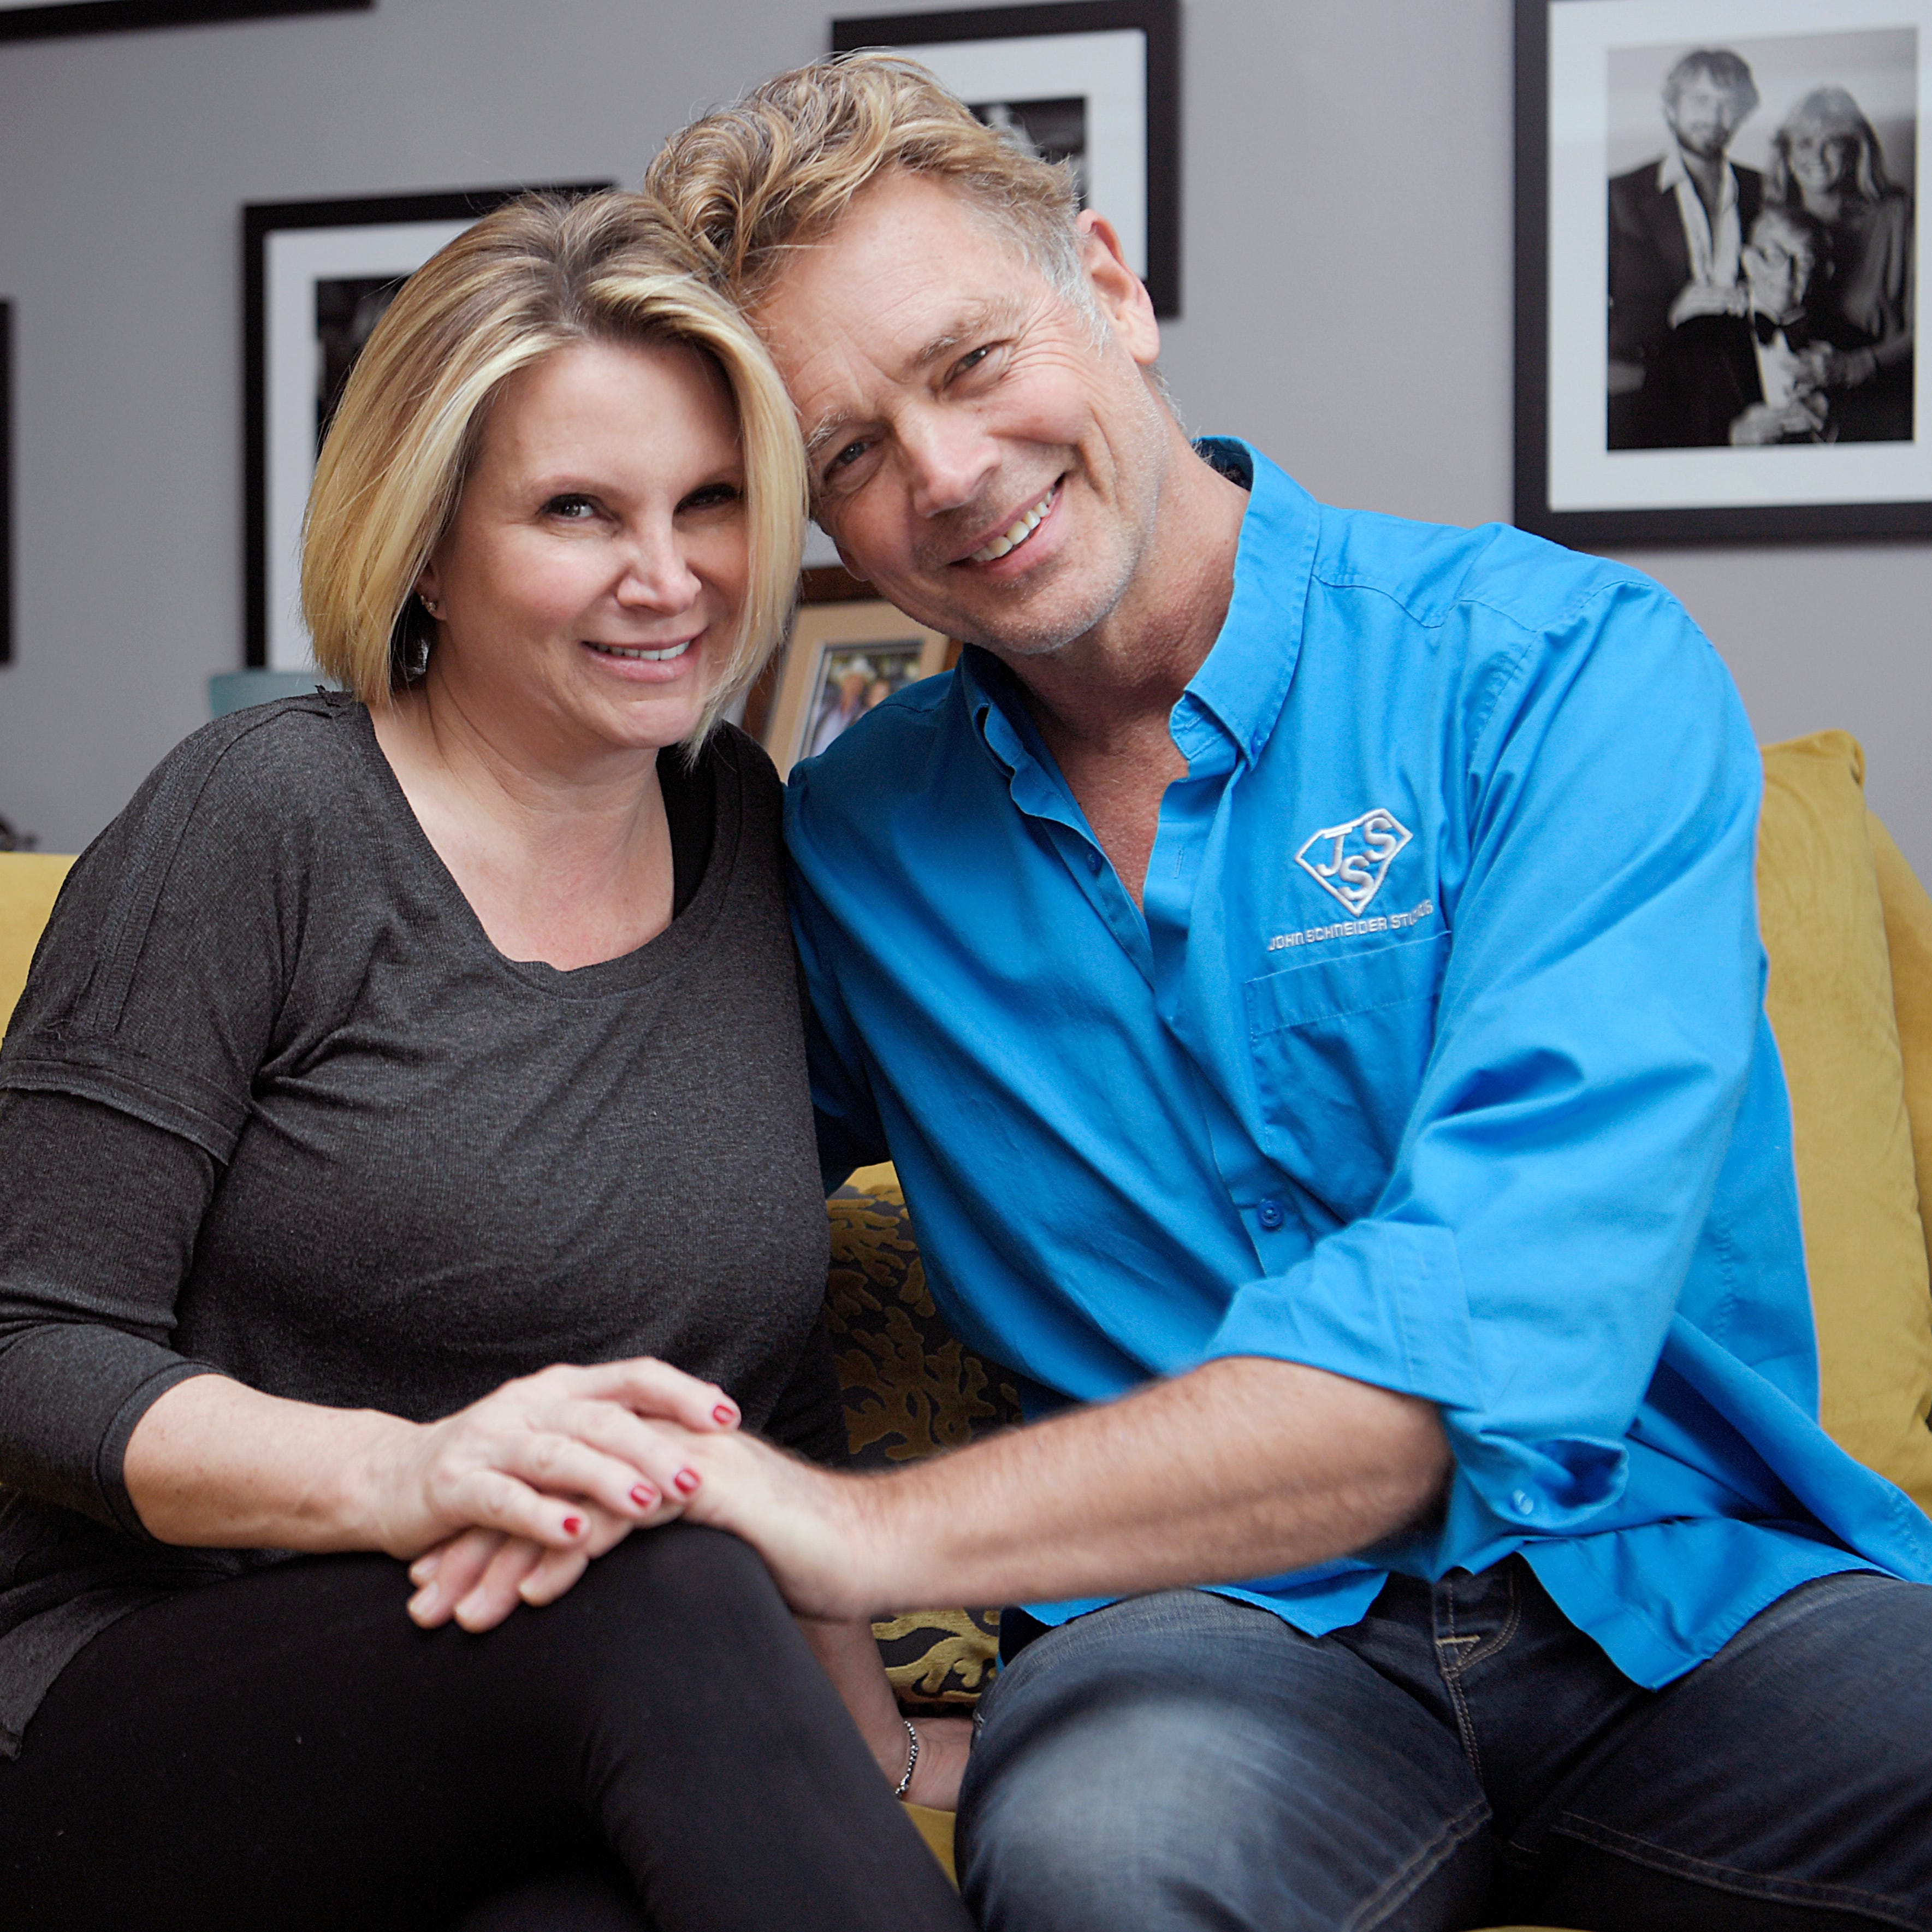 John Schneider finds a girlfriend and business partner who's all in on John Schneider